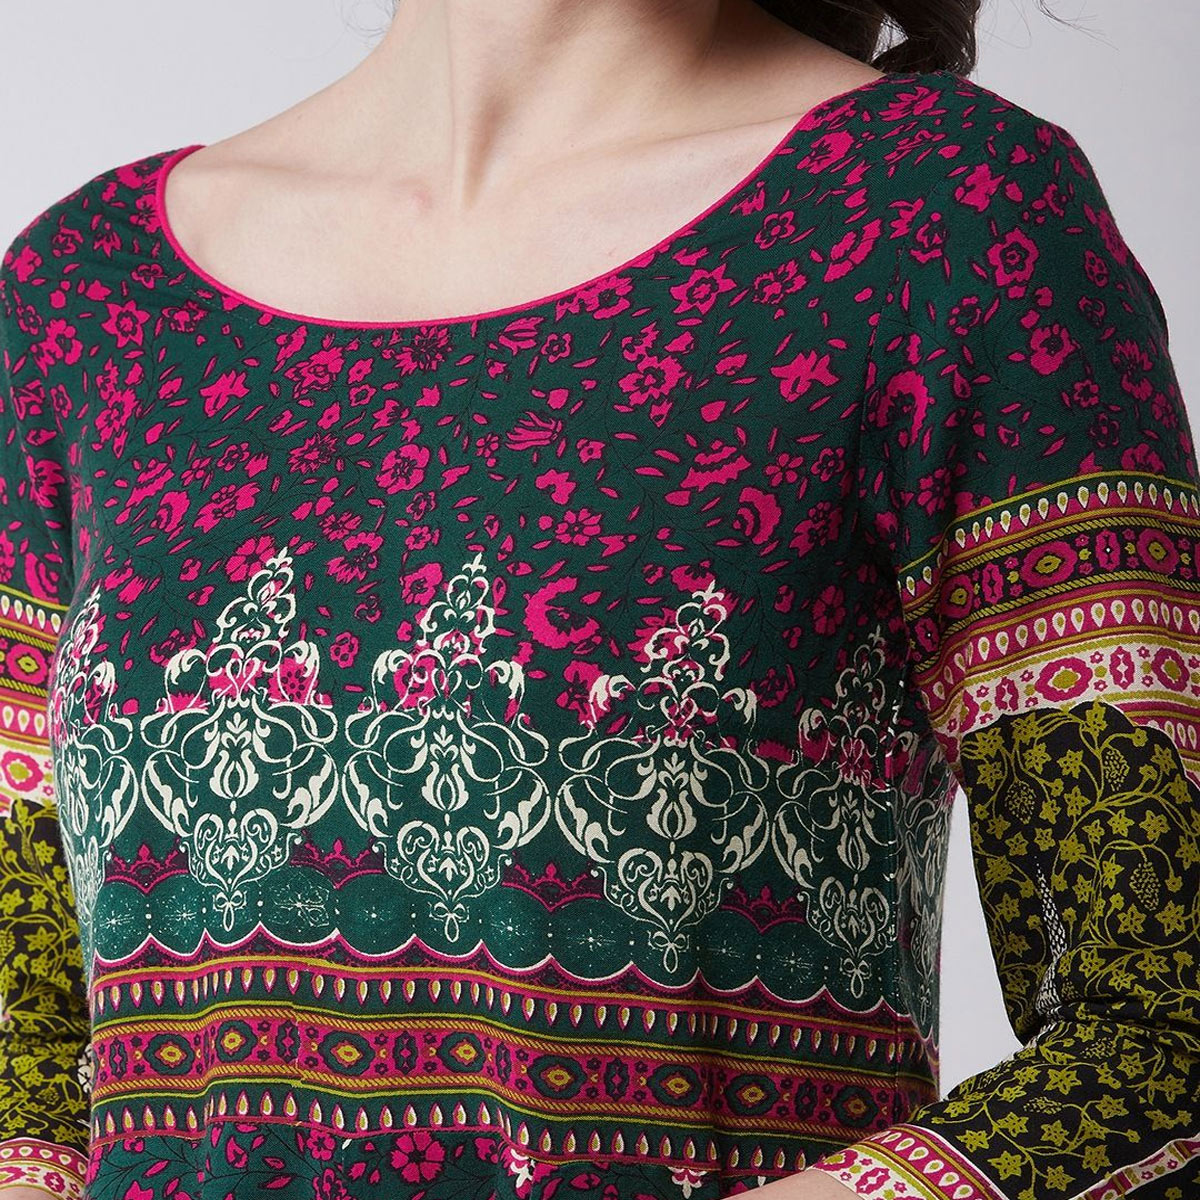 Pannkh - Women's Green Colored Mughal Printed Rayon Flared Kurti With Tie-dye Dupatta